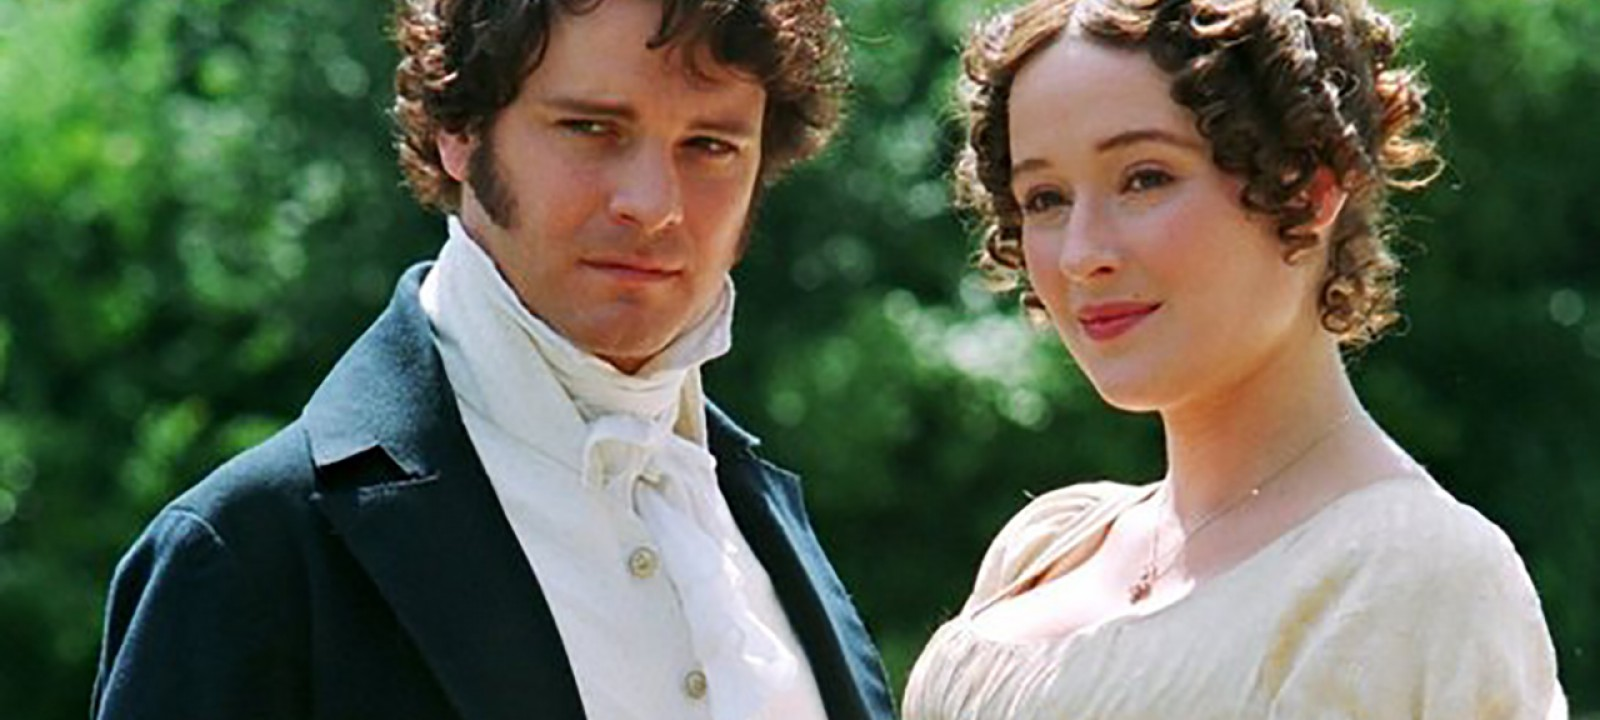 pemberley pride and prejudice characters relationship